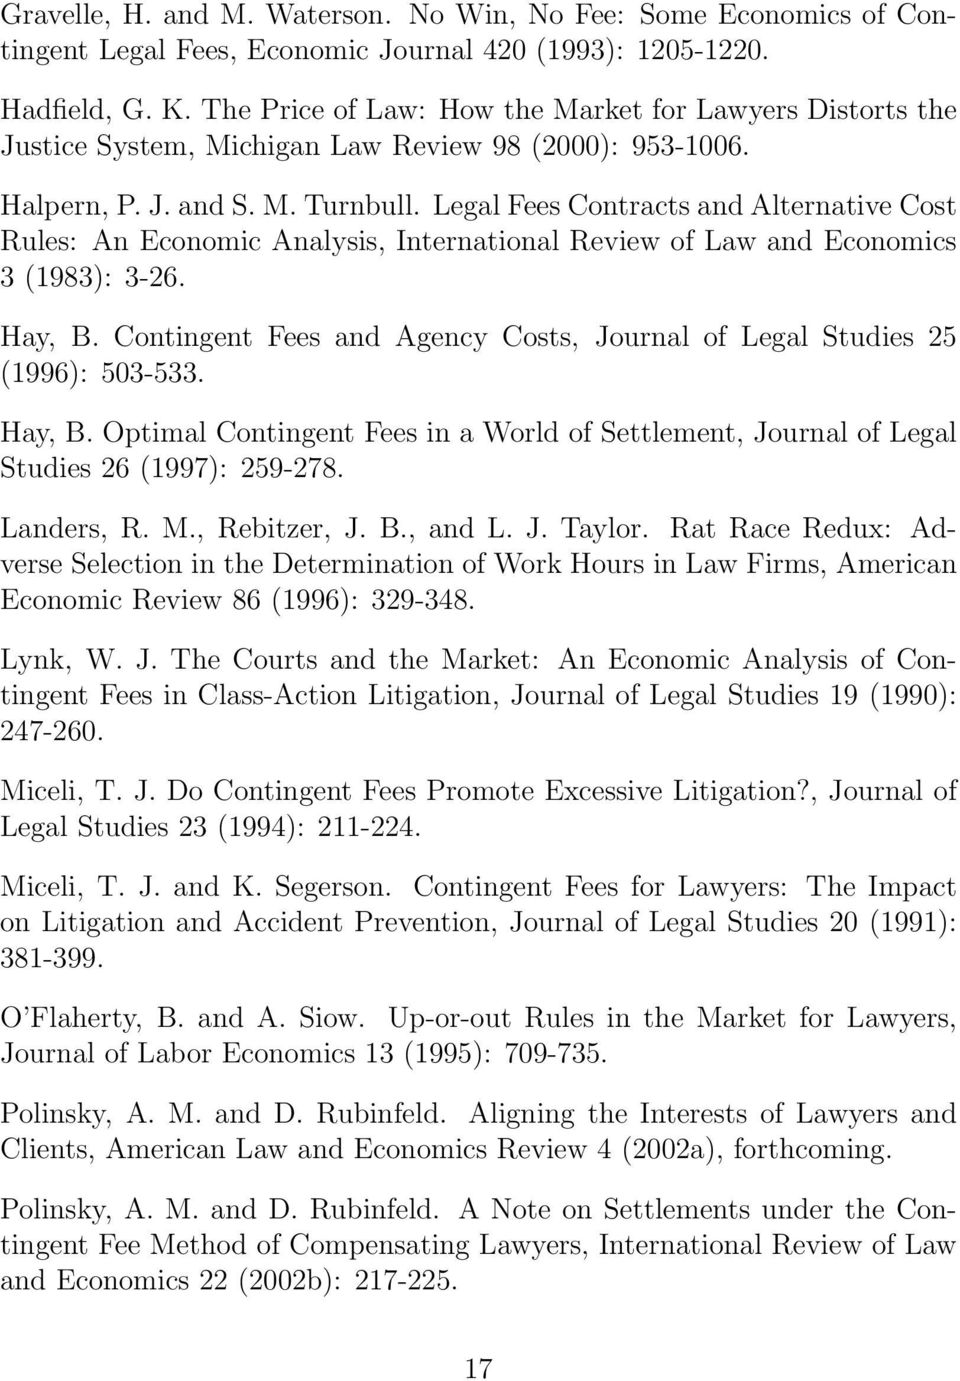 Legal Fees Contracts and Alternative Cost Rules: An Economic Analysis, International Review of Law and Economics 3 (1983): 3-26. Hay, B.